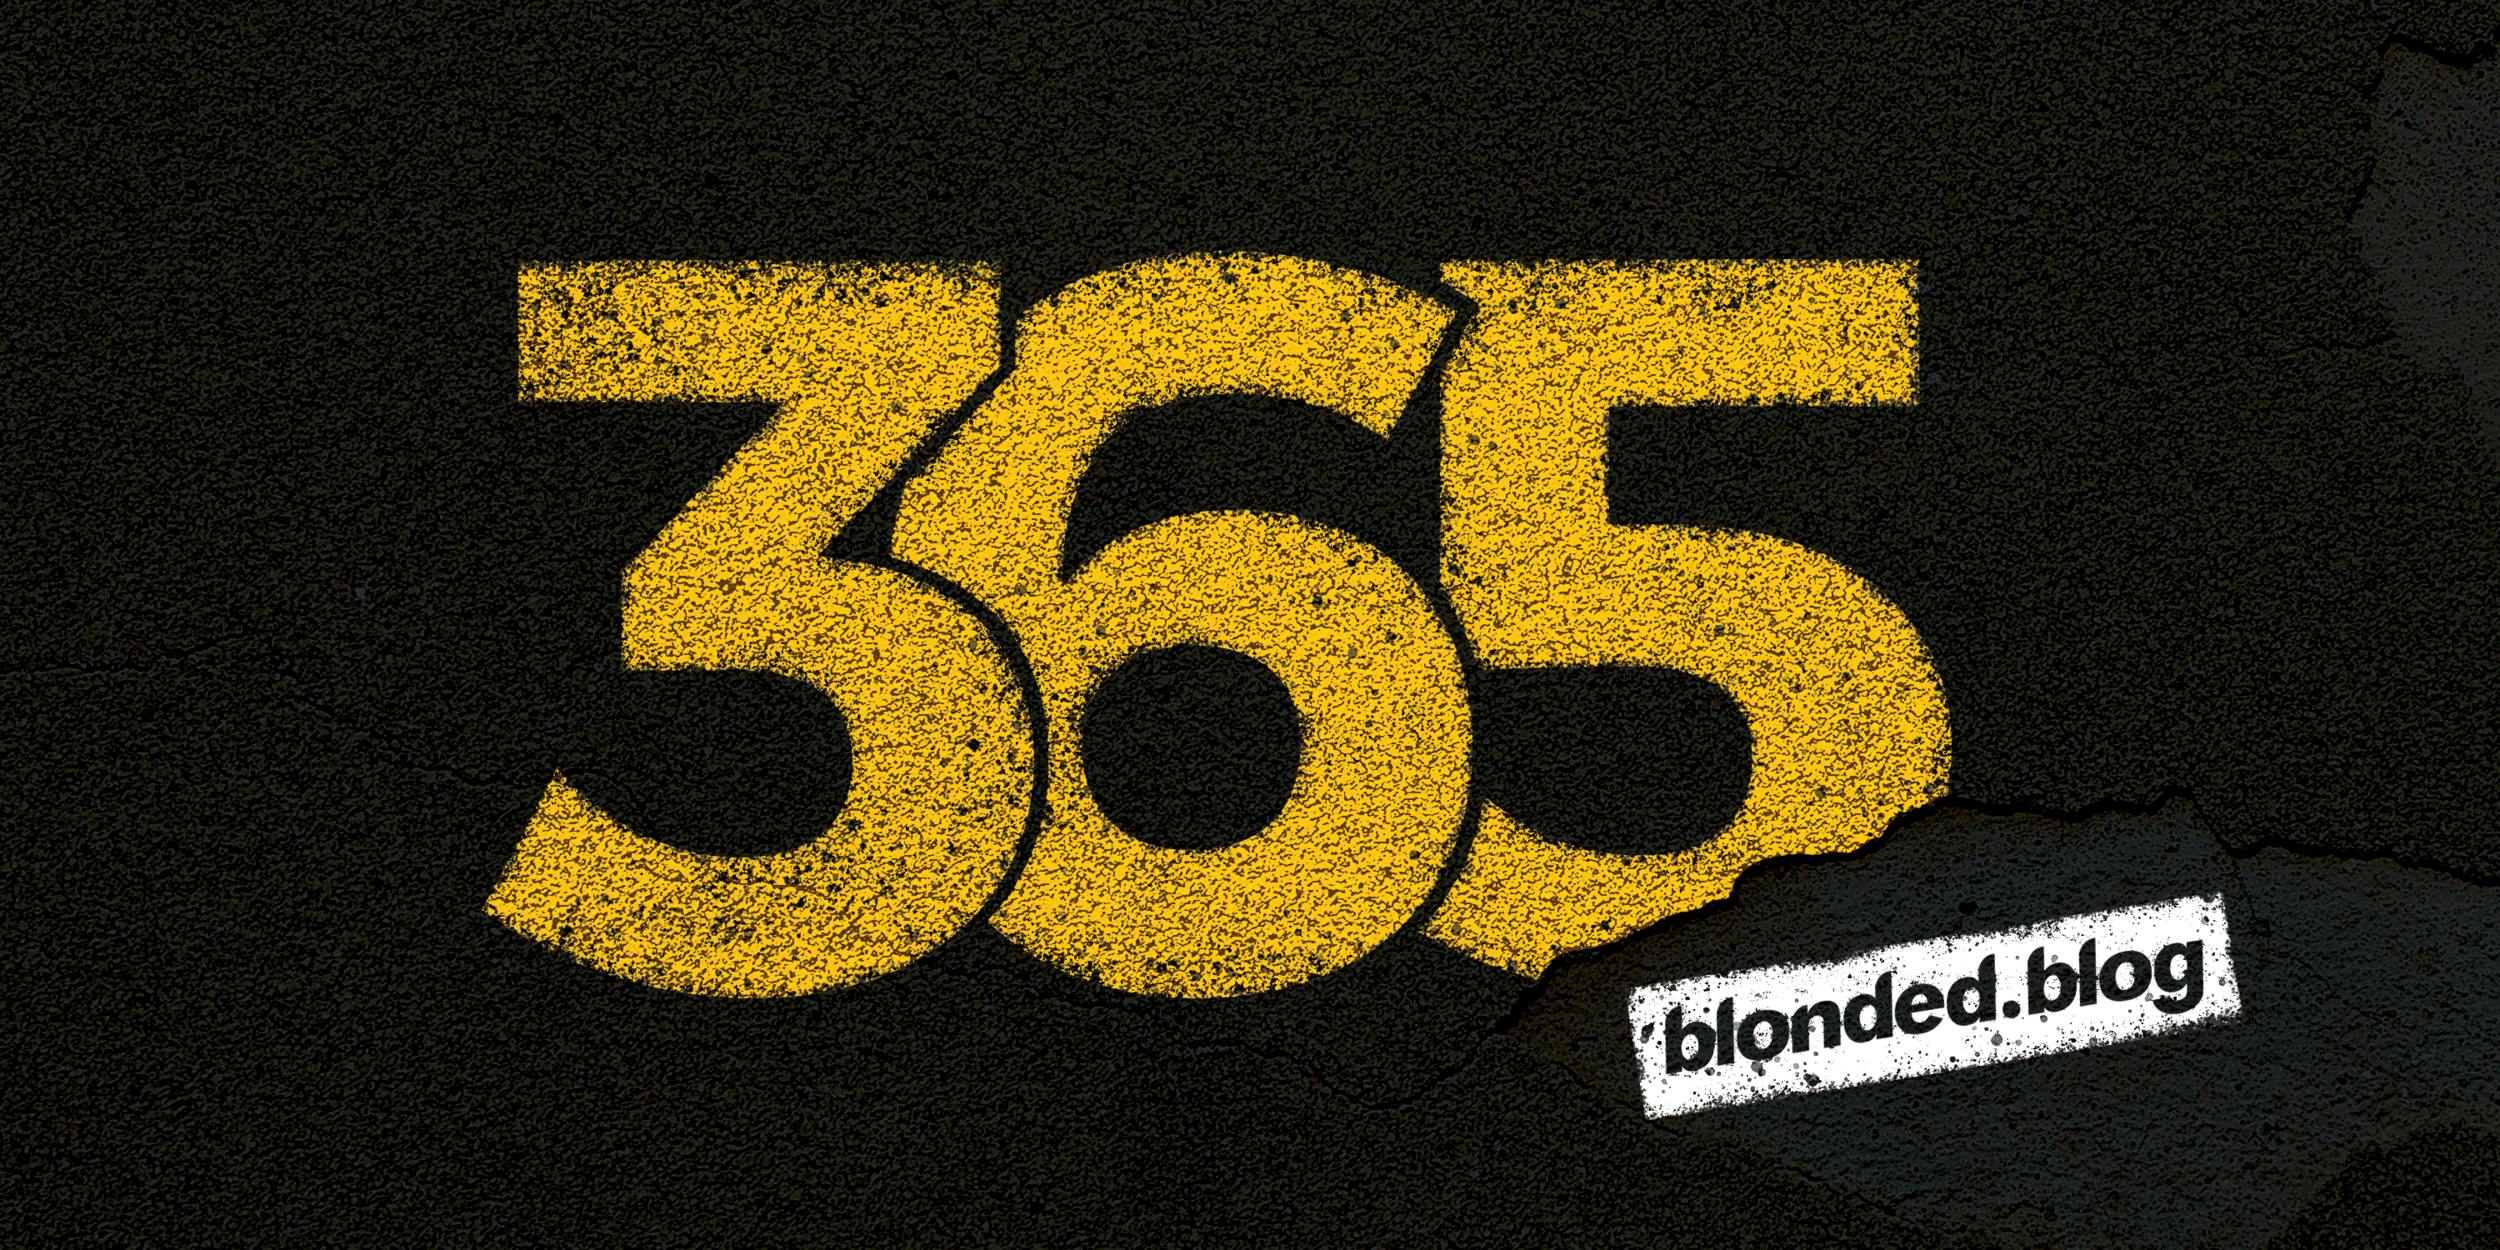 blonded.blog-365-hero.png